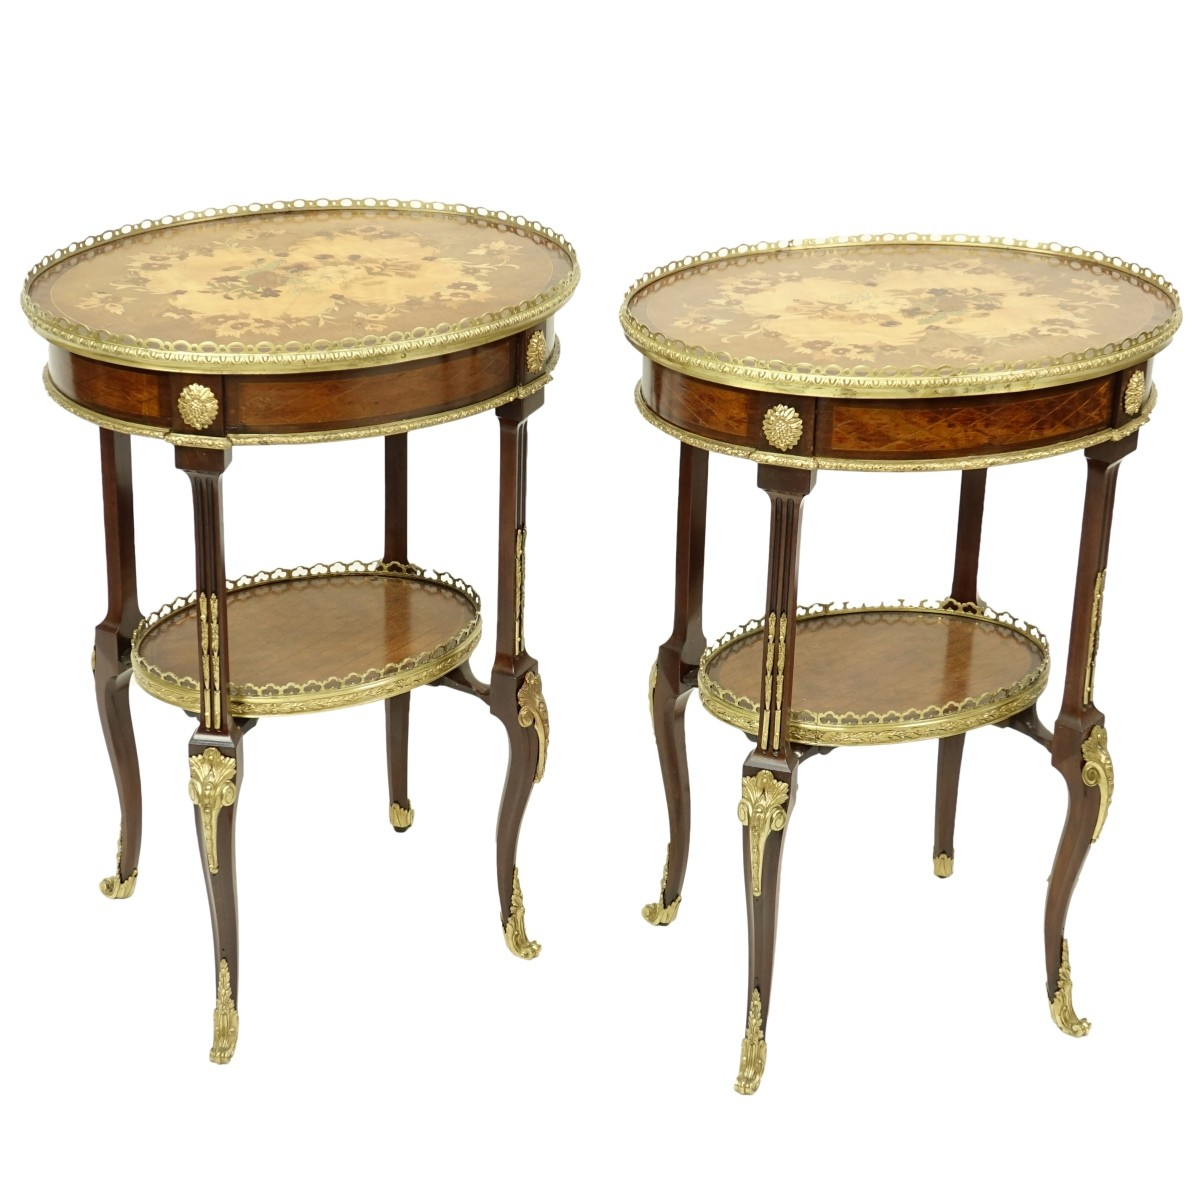 19C Marquetry Tables